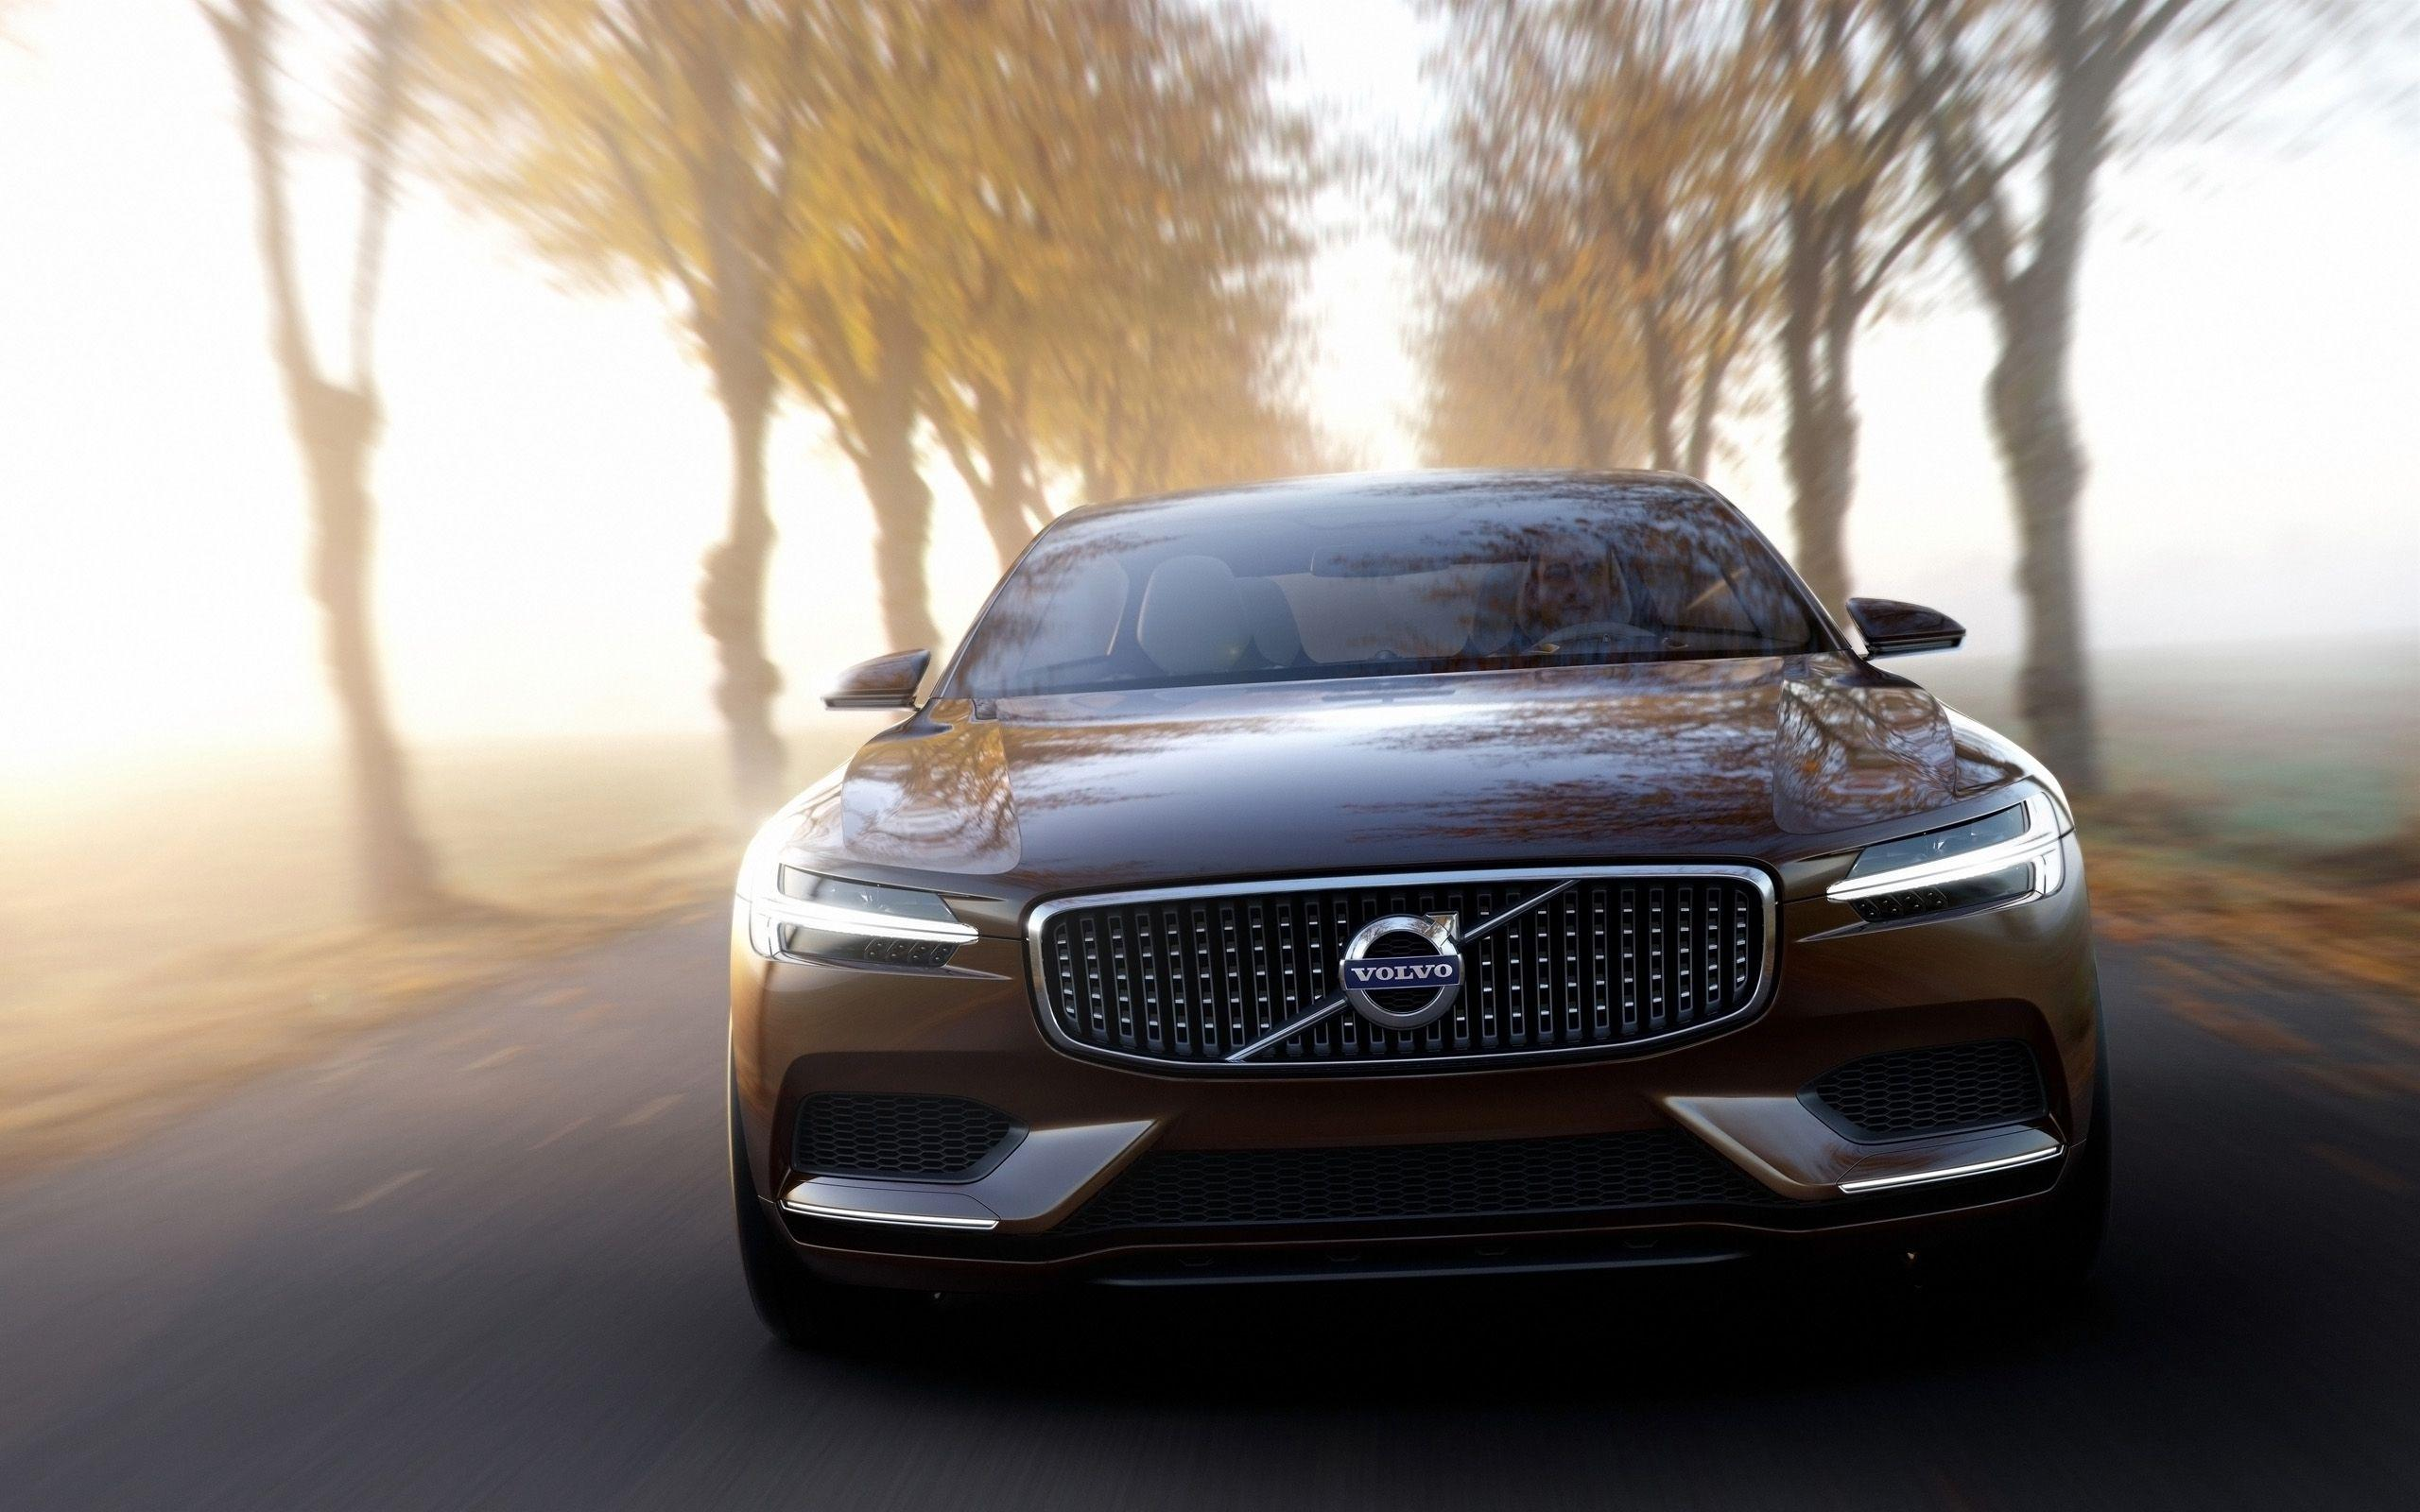 2014 Volvo Concept Estate Wallpaper | HD Car Wallpapers | ID #4150